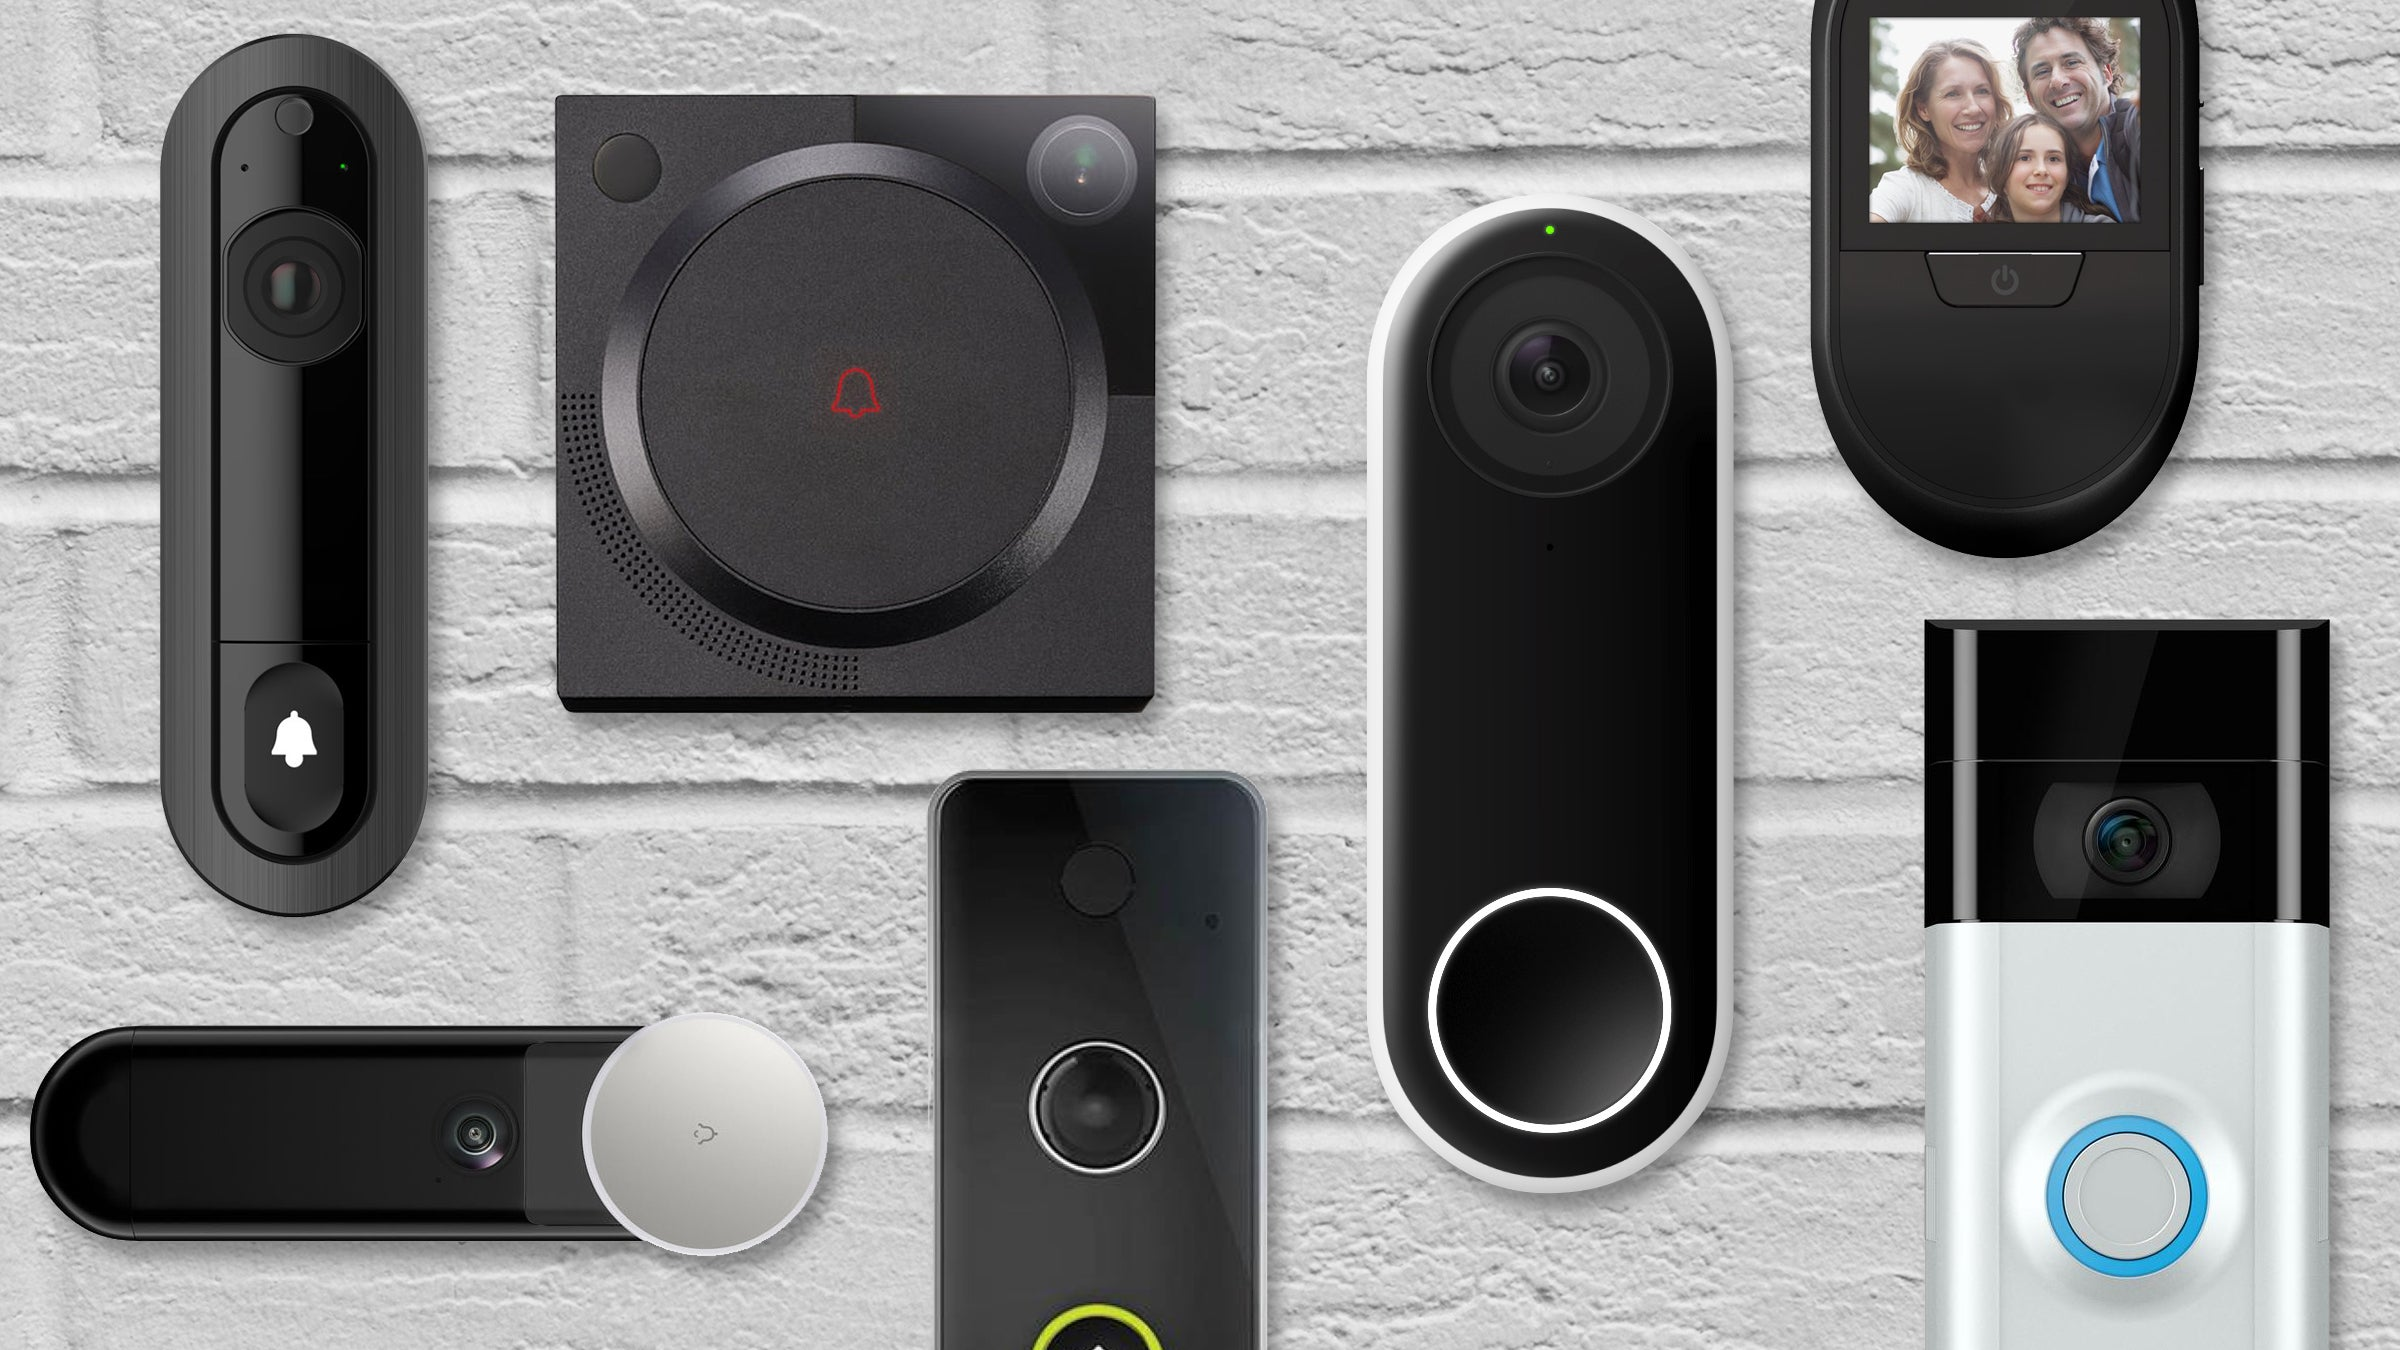 Best Doorbell Camera 2019 Best video doorbells of 2019: Reviews and buying advice | TechHive